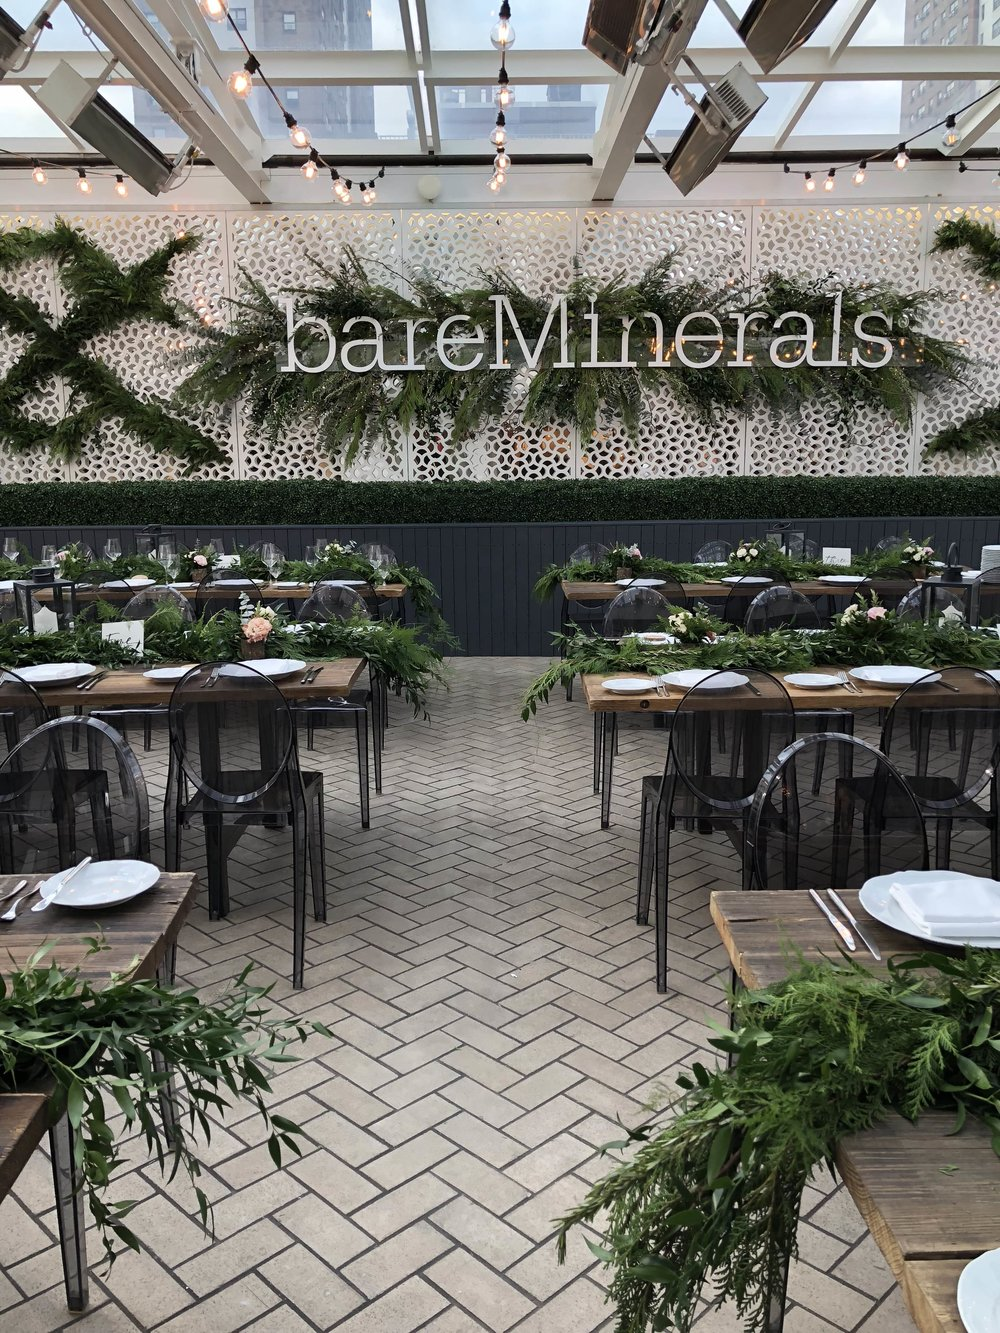 Overview of Grennery-Filled Bareminerals Dinner- B Floral